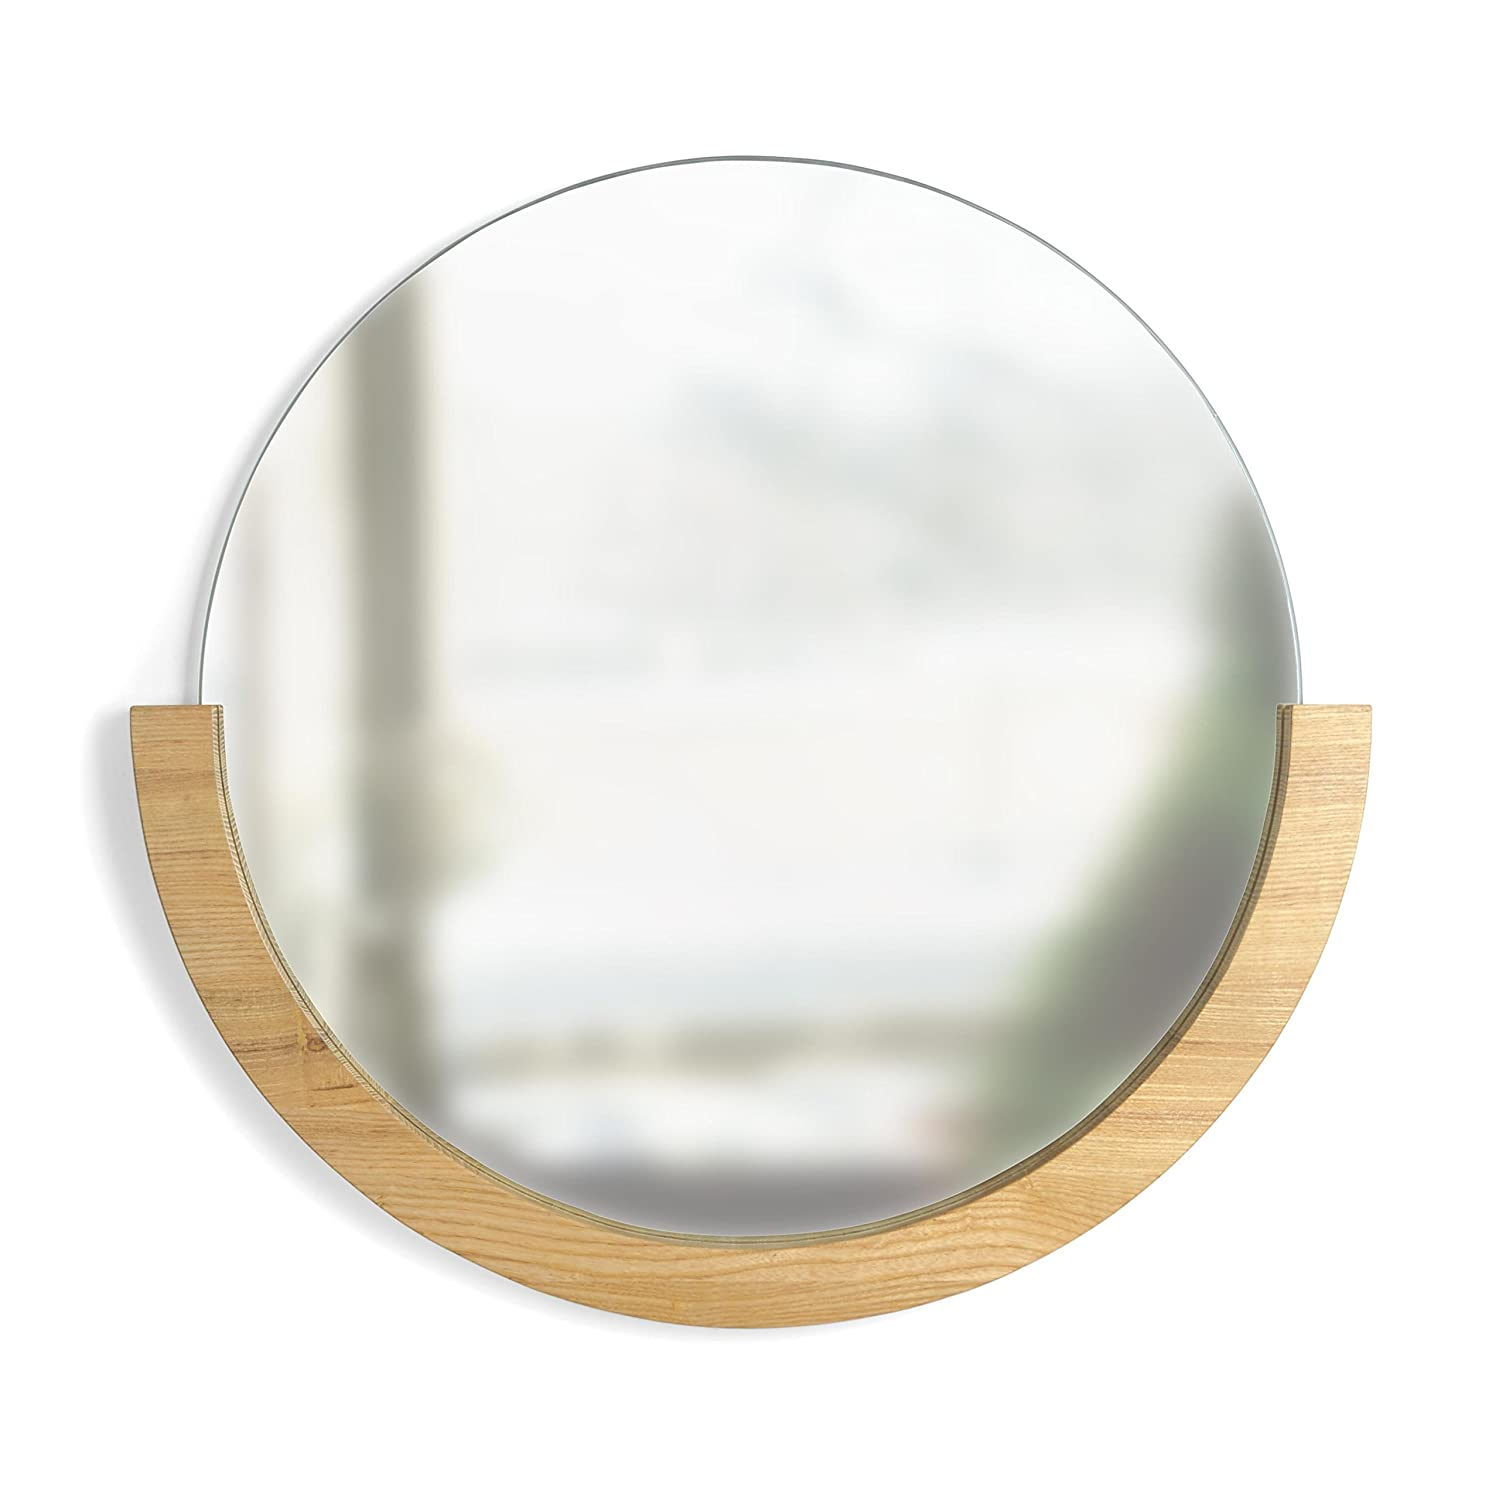 best rated circular mirror 2018